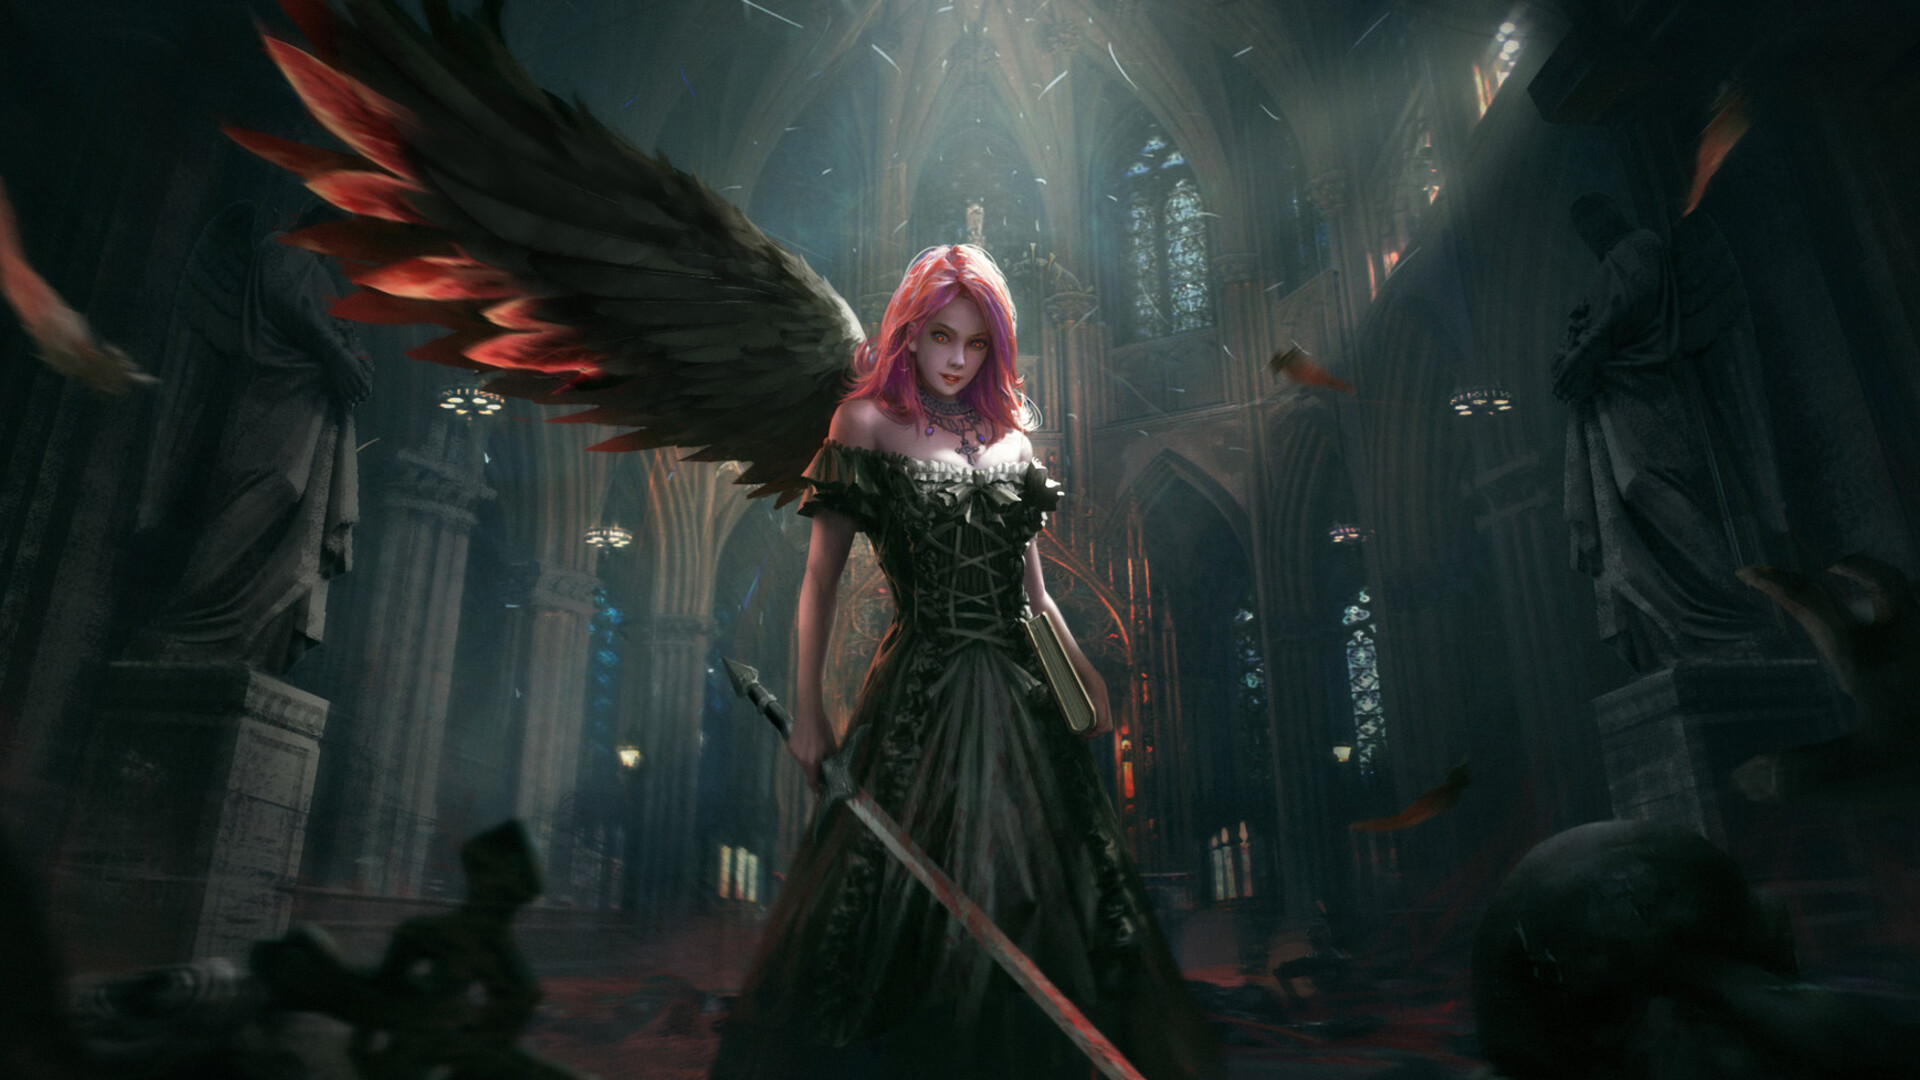 Hd Fantasy Girl Wallpapers 1080p 1920x1080 Dark Angel Laptop Full Hd 1080p Hd 4k Wallpapers